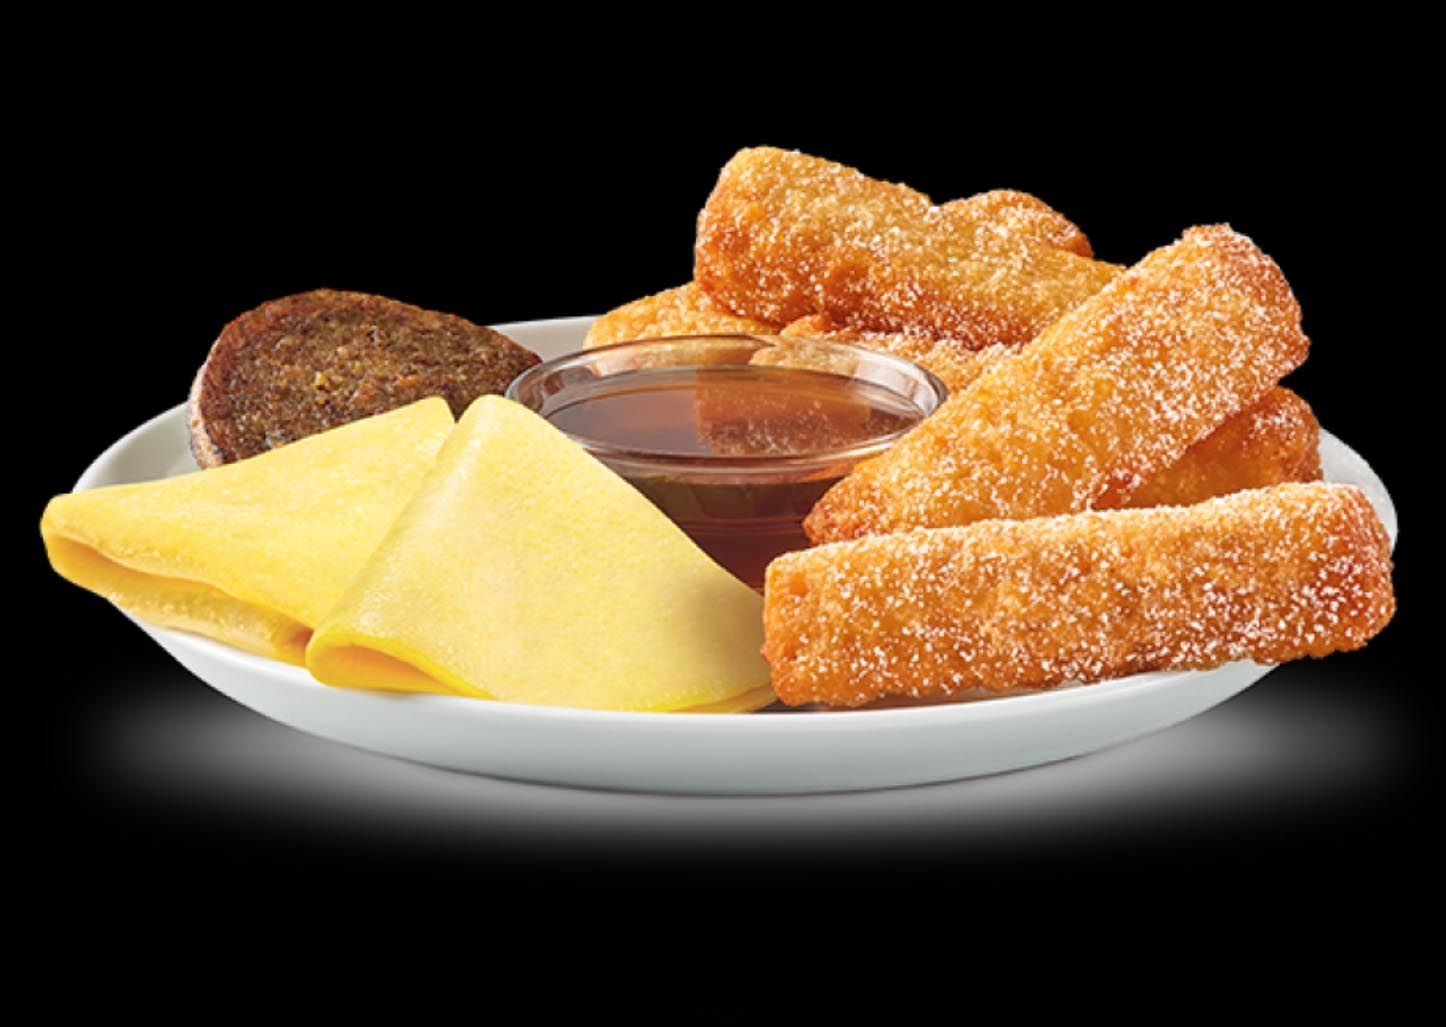 The New Sweet and Savory French Toast Dips Breakfast Platter Arrives at Hardee's